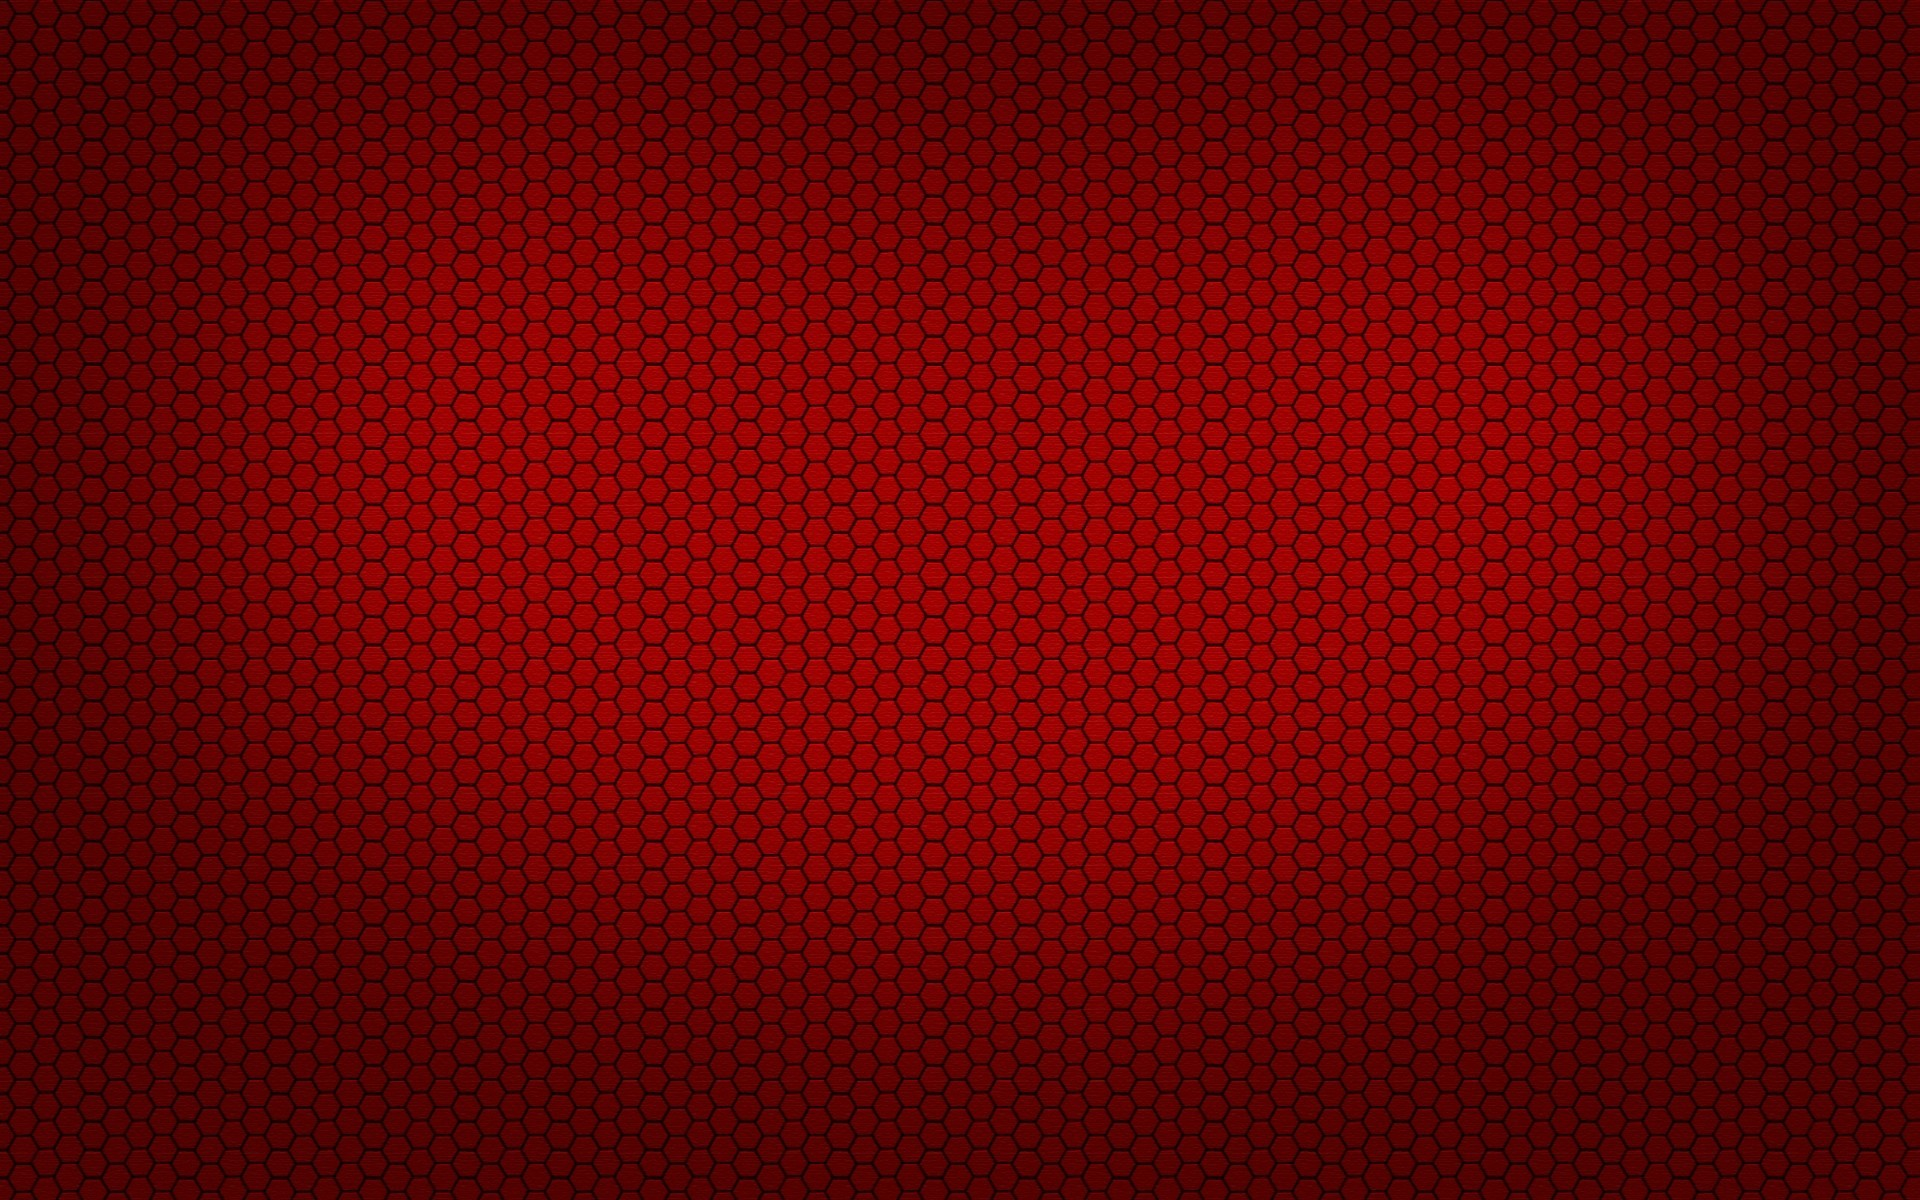 1920x1200 Plain backgrounds dark red plain background free hd wallpapers | Black .